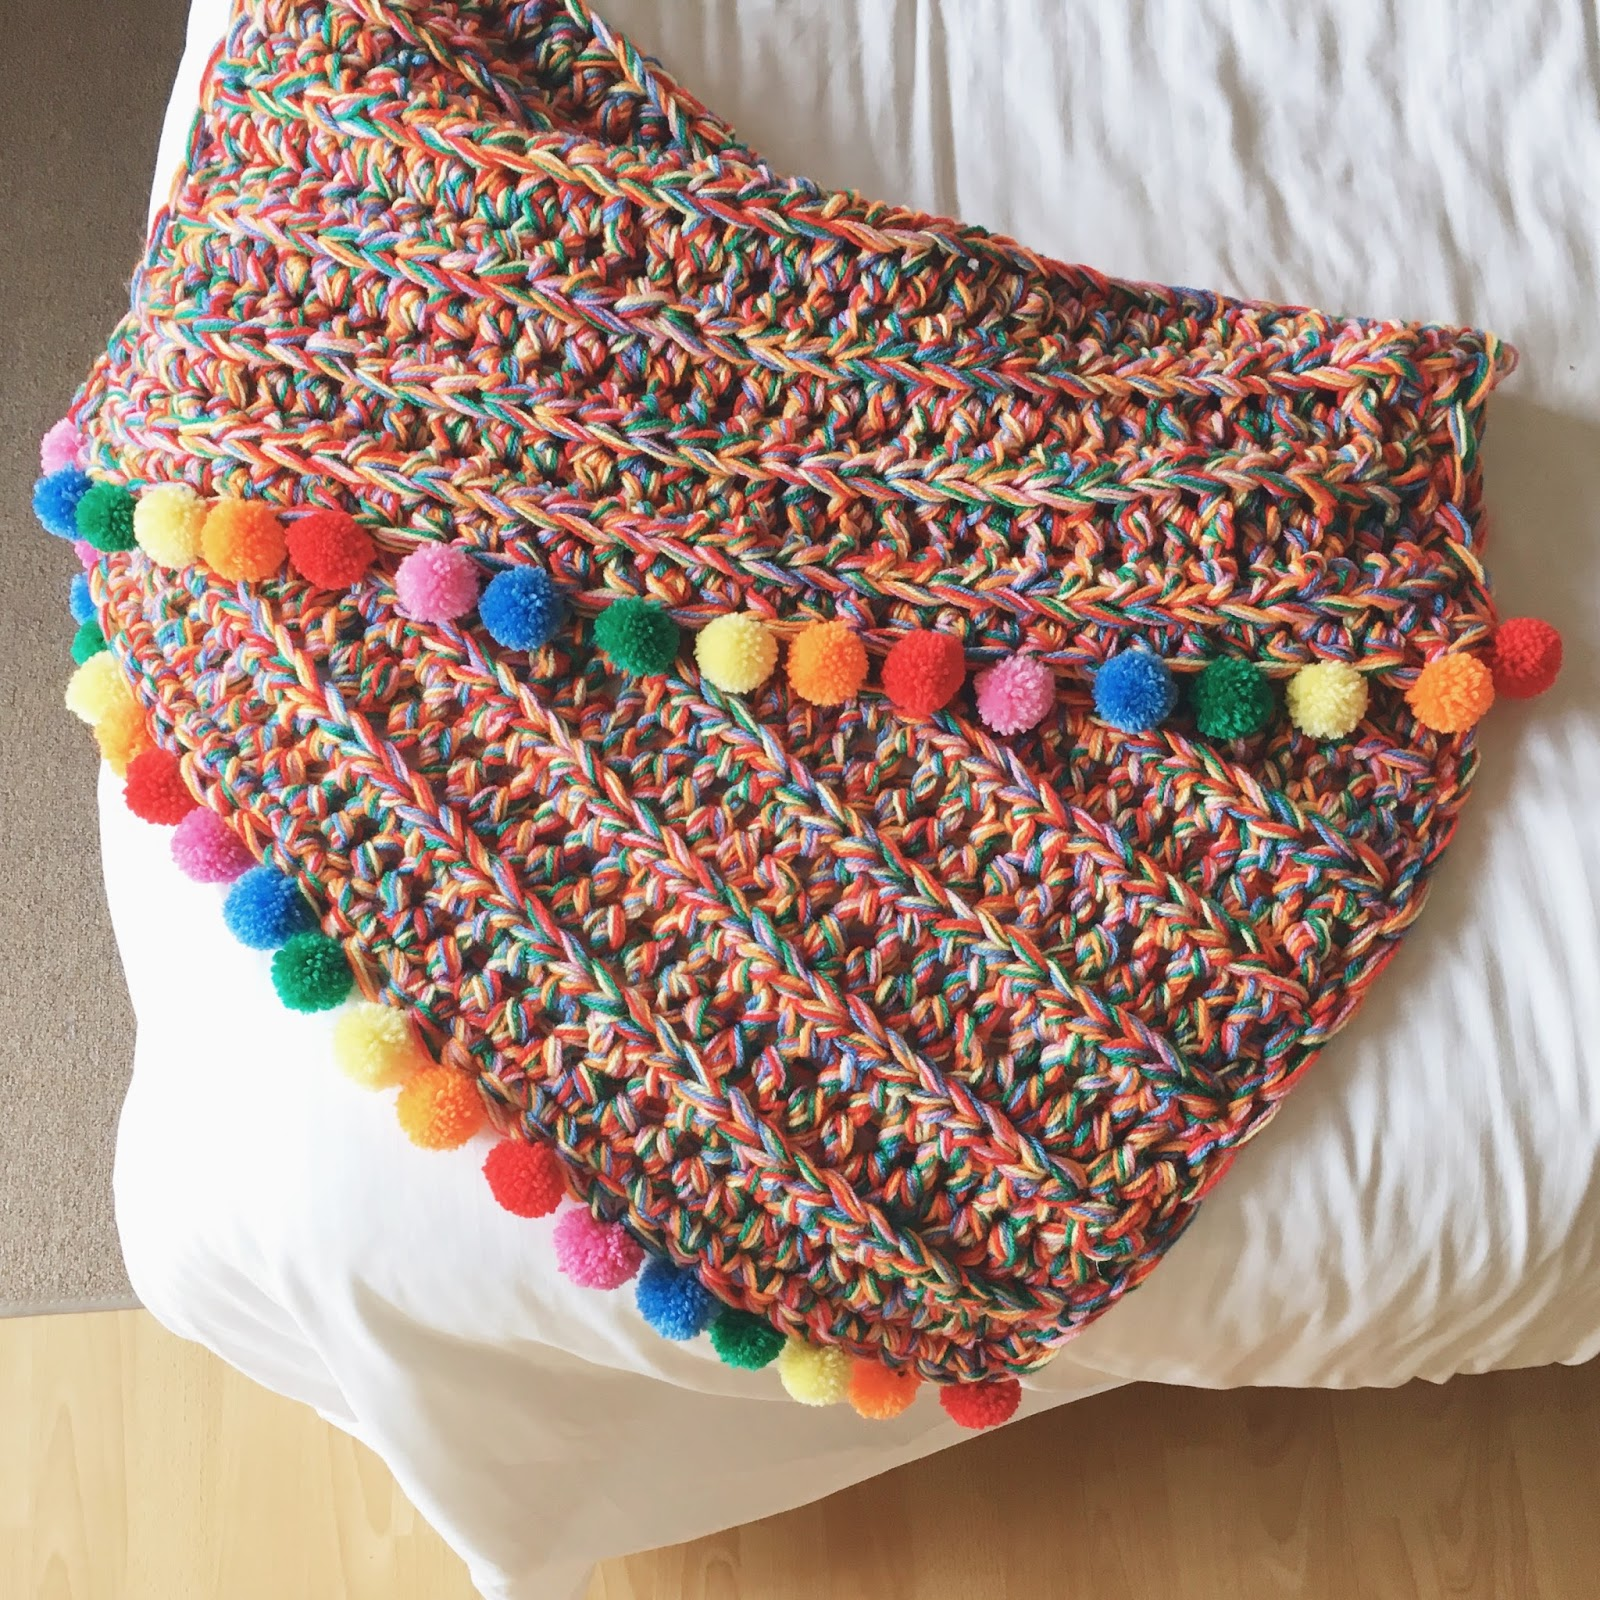 Super chunky rainbow blanket free tutorial lottie albert if you do use this pattern please tag your makes with lottieandalbertrainbowblanket so i can see what colours you choose how many pompoms you go for and bankloansurffo Choice Image